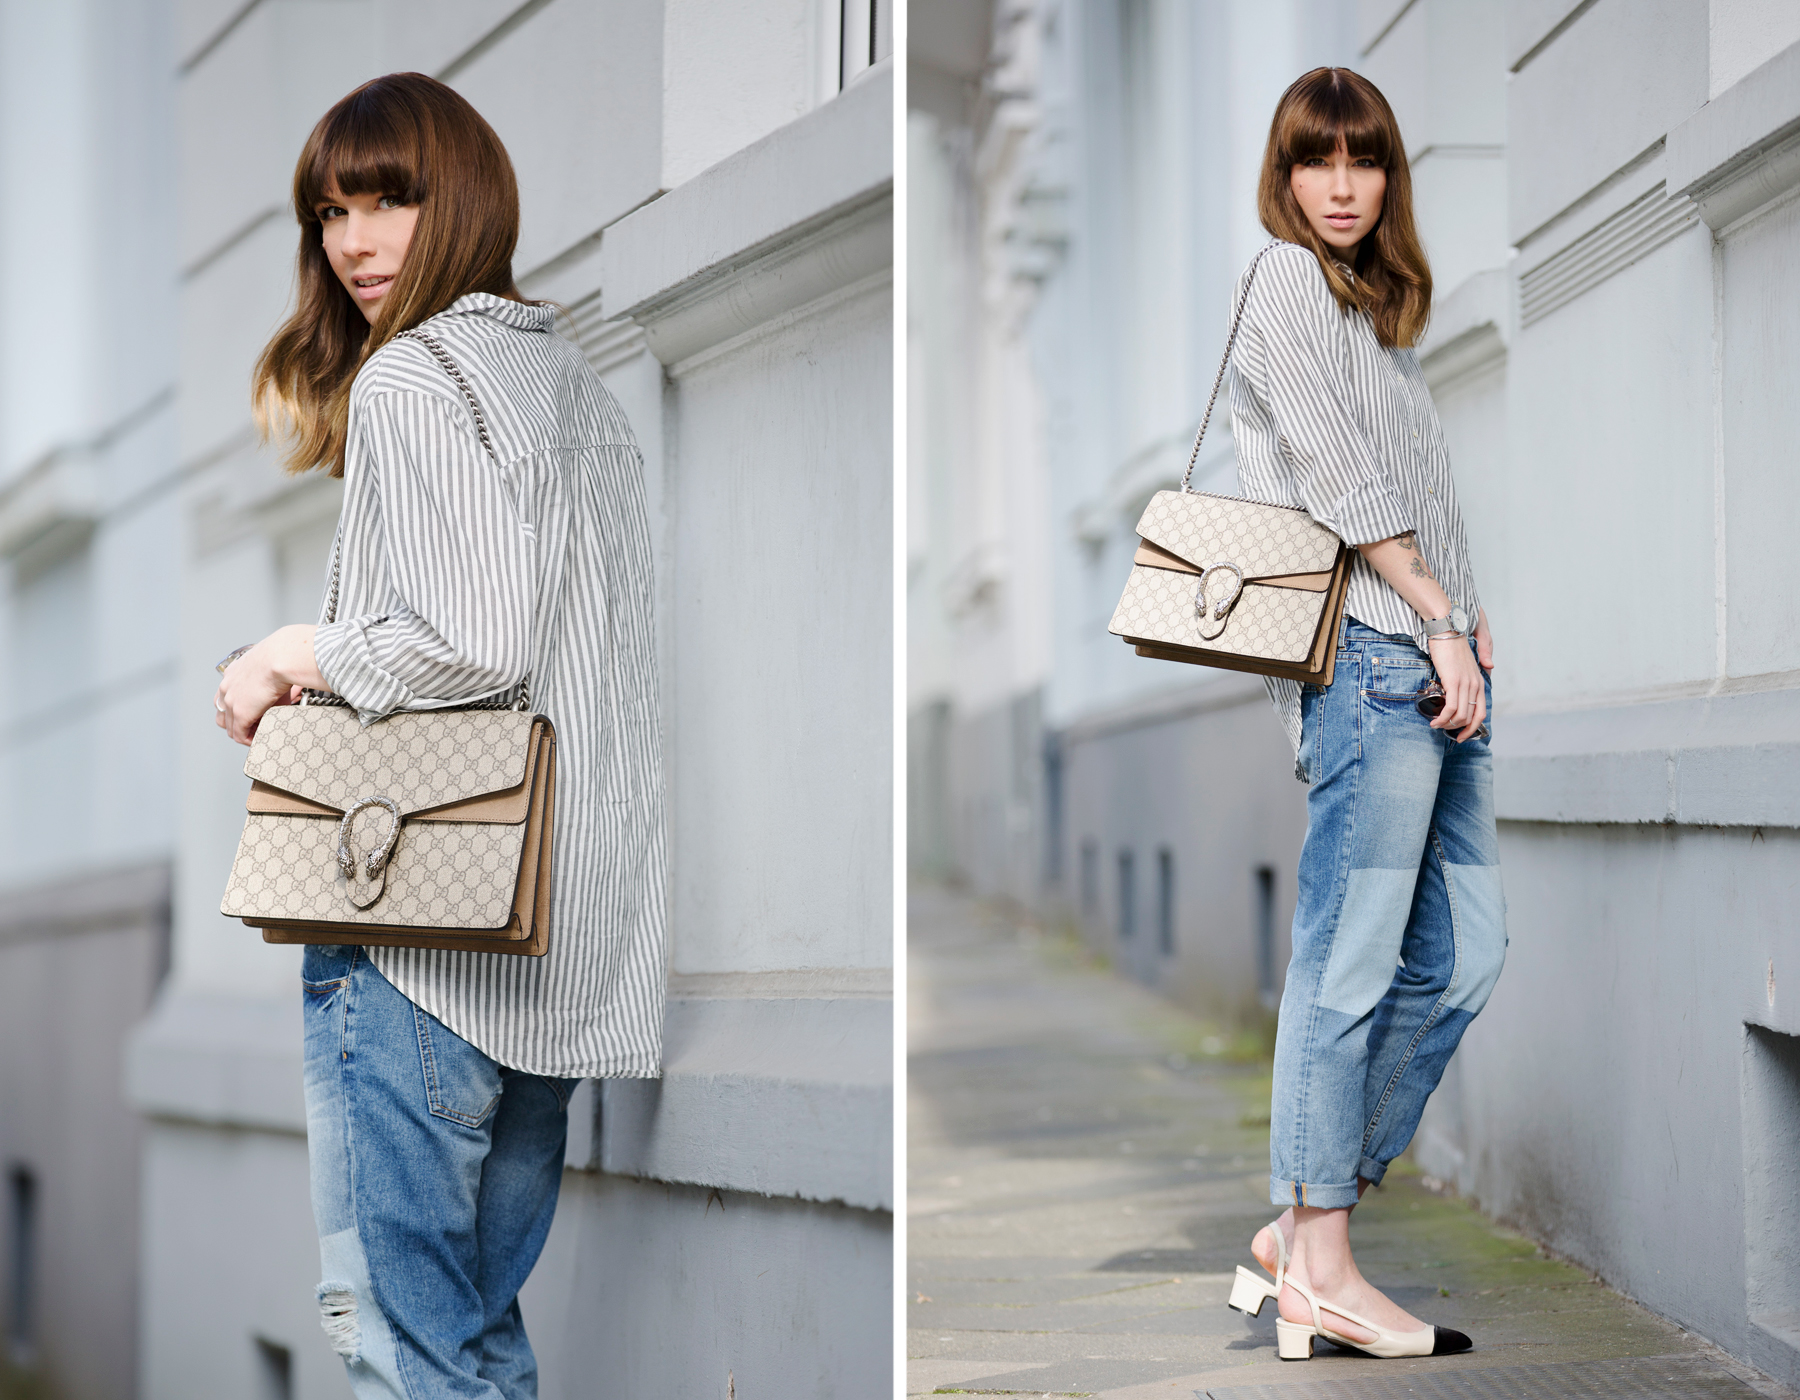 francaise striped shirt parisienne style bangs brunette jeans chanel lookalike heine pumps chic luxury gucci dionysus bag sun spring outfit ootd look le specs fashionblogger ricarda schernus cats & dogs blog 5